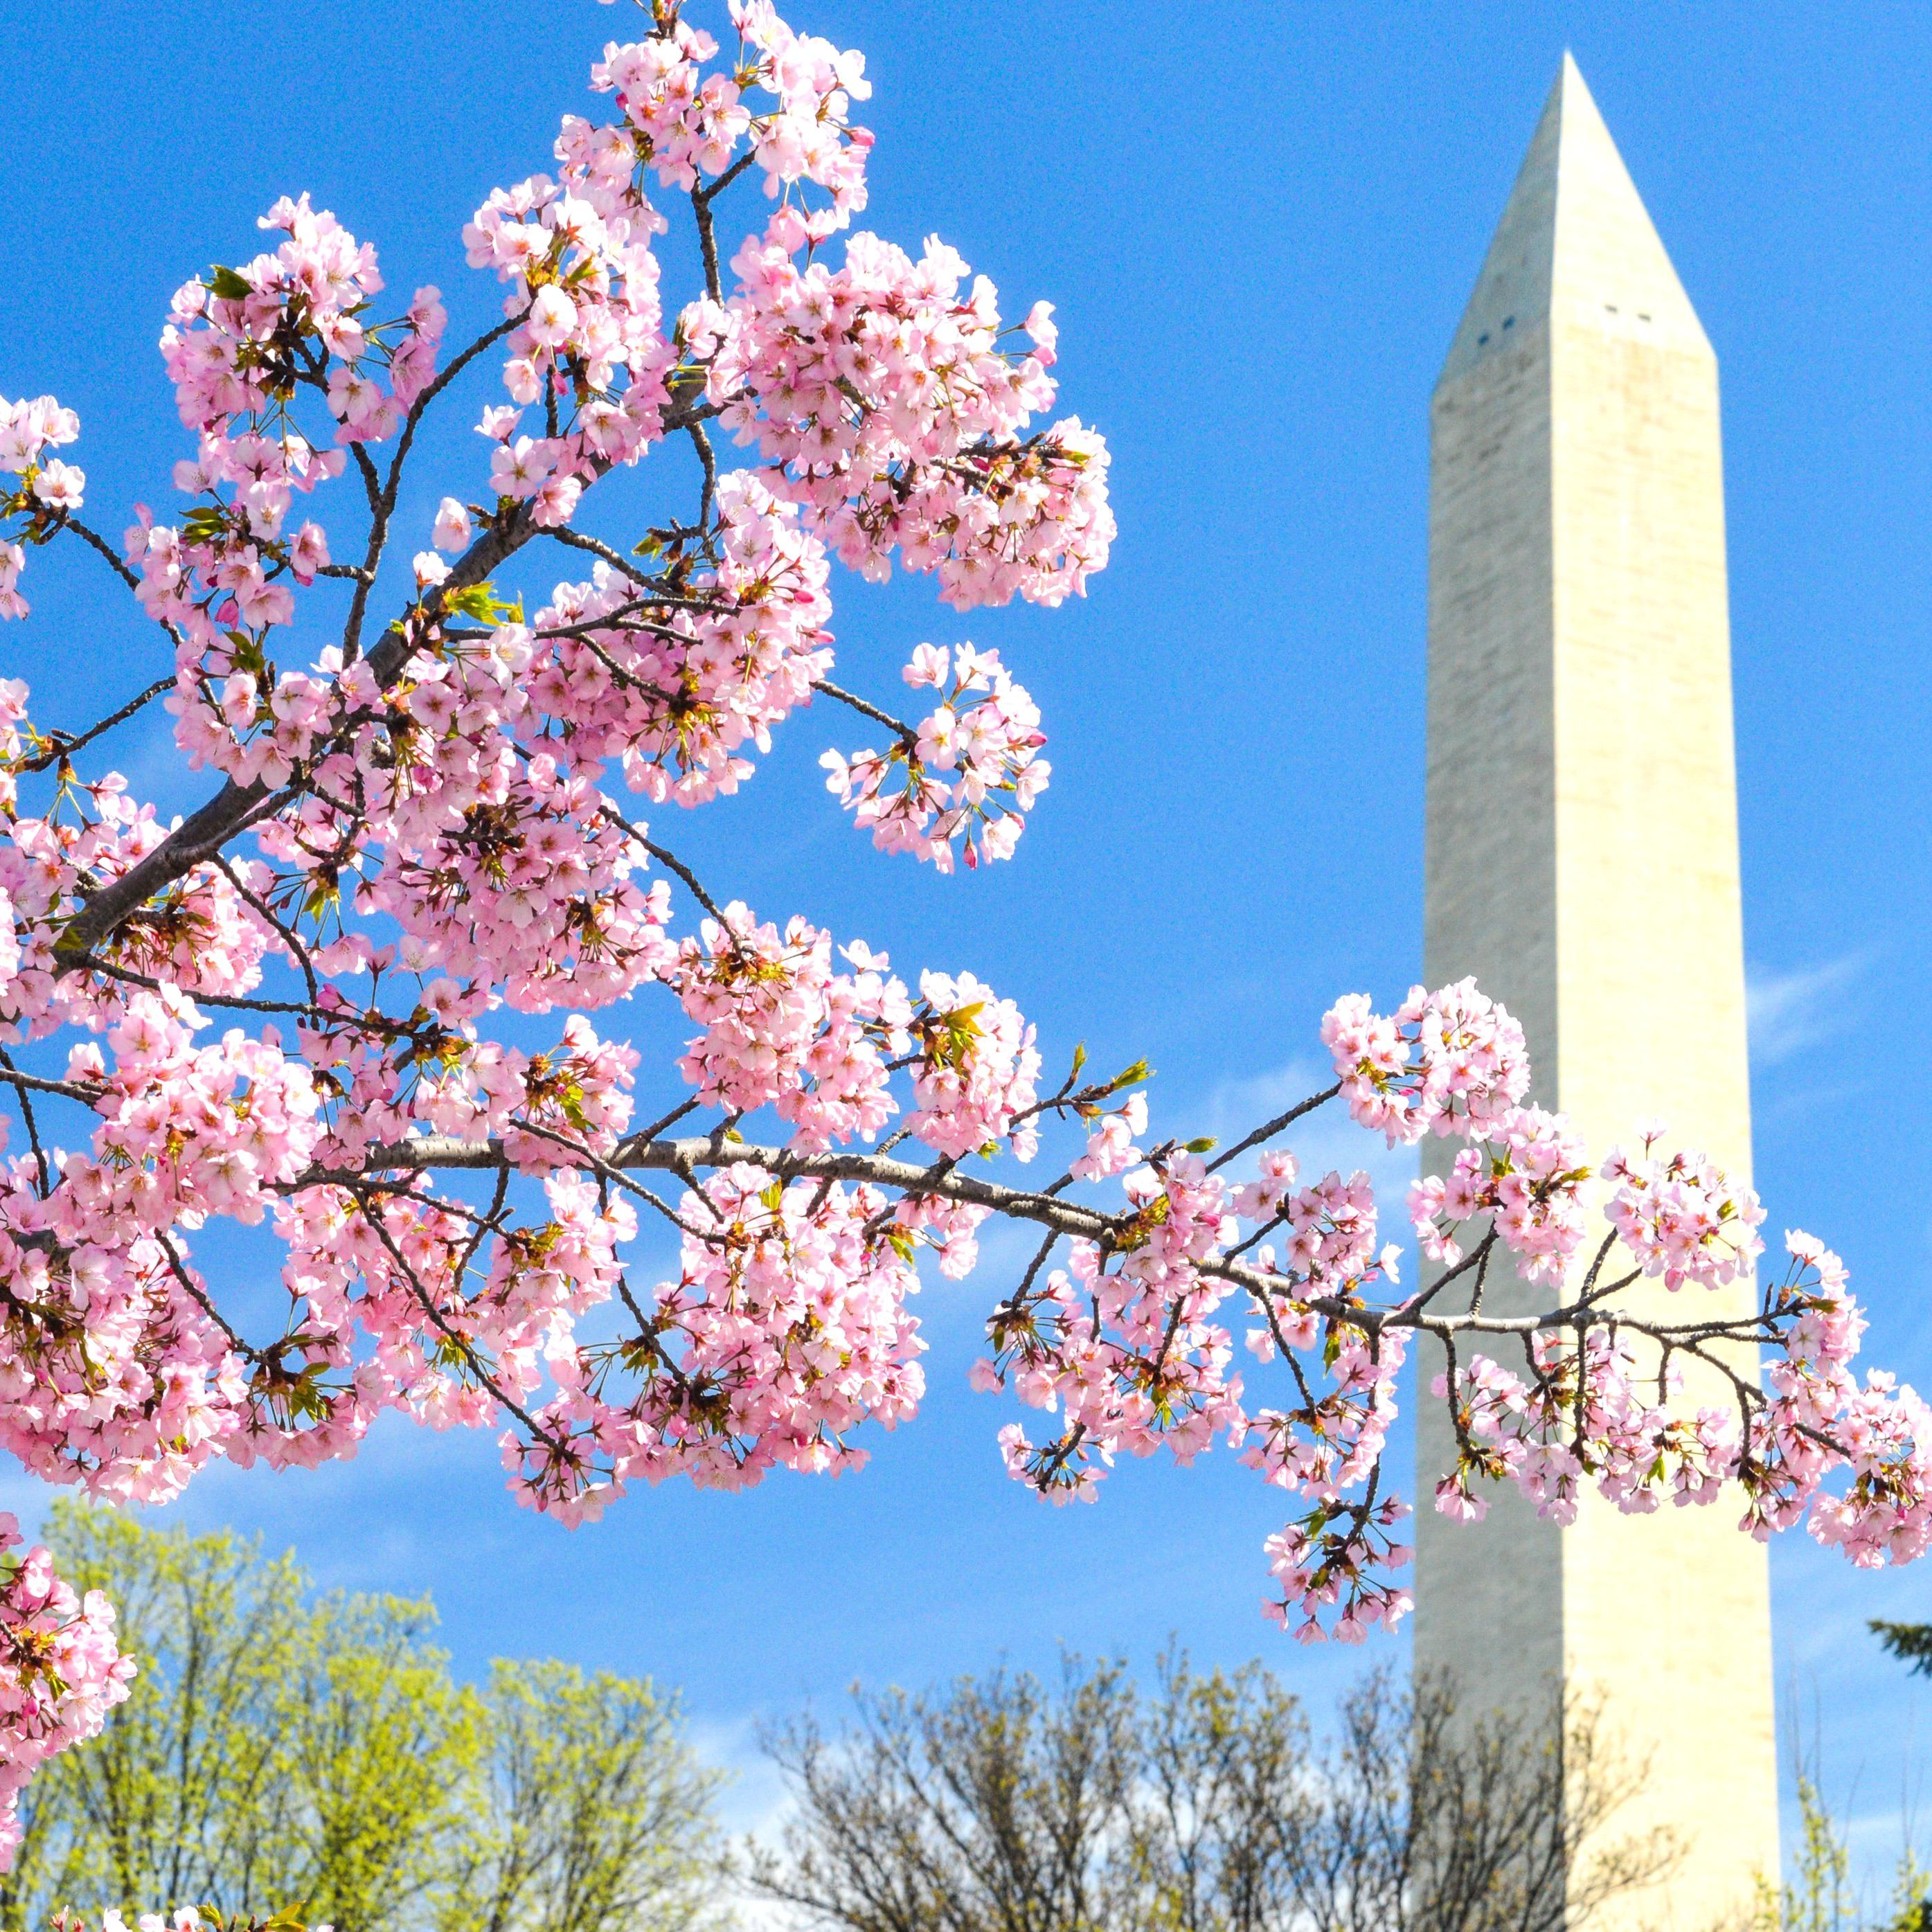 The National Cherry Blossom Festival In Washington Dc Takes Place March April Heres How To Make The Most Of This S In 2020 Kyoto Travel Kyoto Japan Travel Tokyo Travel